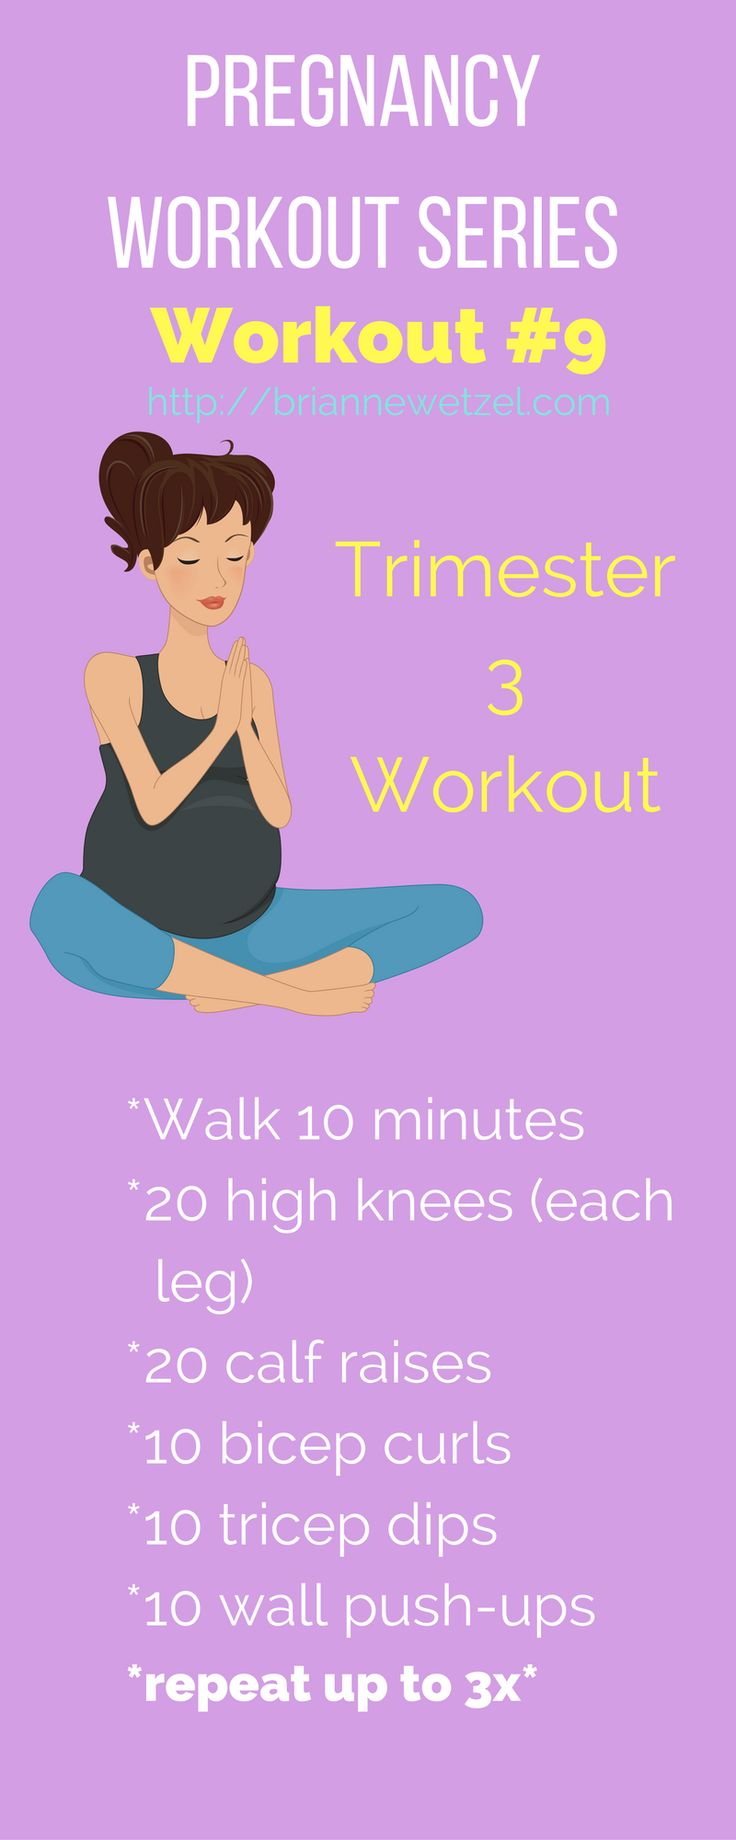 Stay active during your third trimester of pregnancy with these easy workout moves